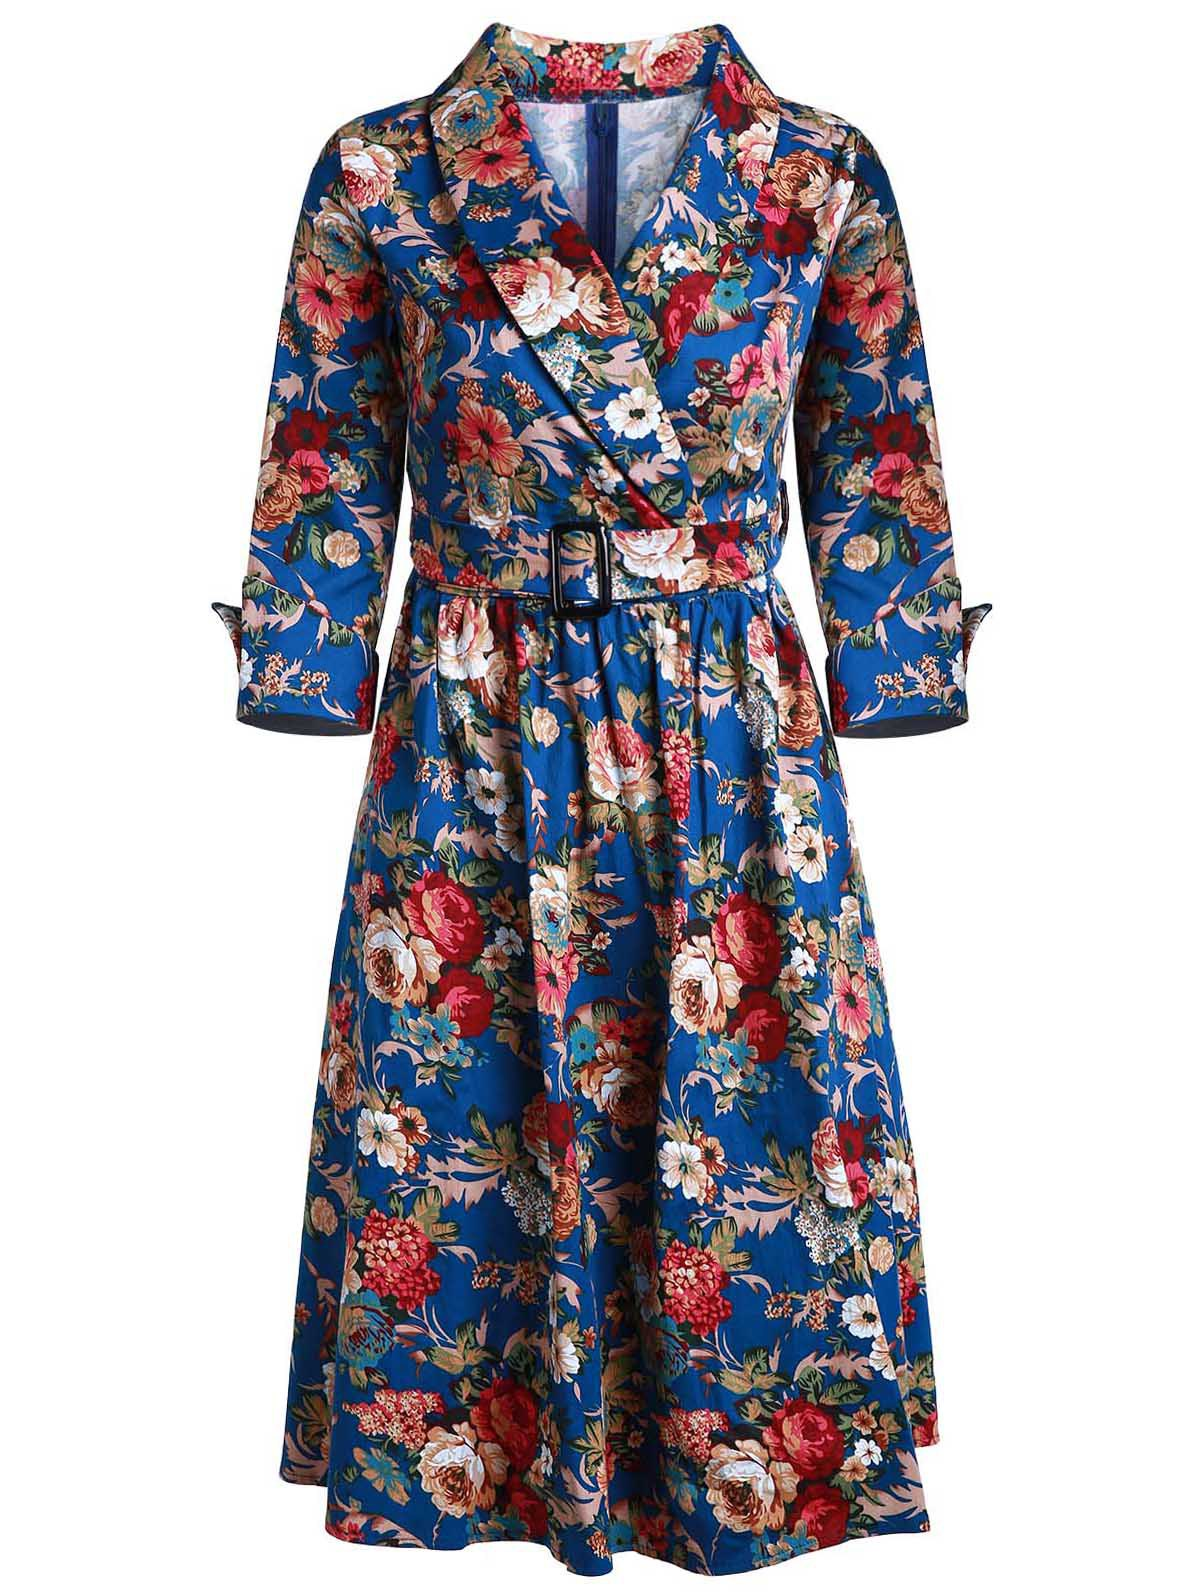 Vintage Style 3/4 Sleeve Shawl Collar Flower Pattern Women's Dress - DEEP BLUE L